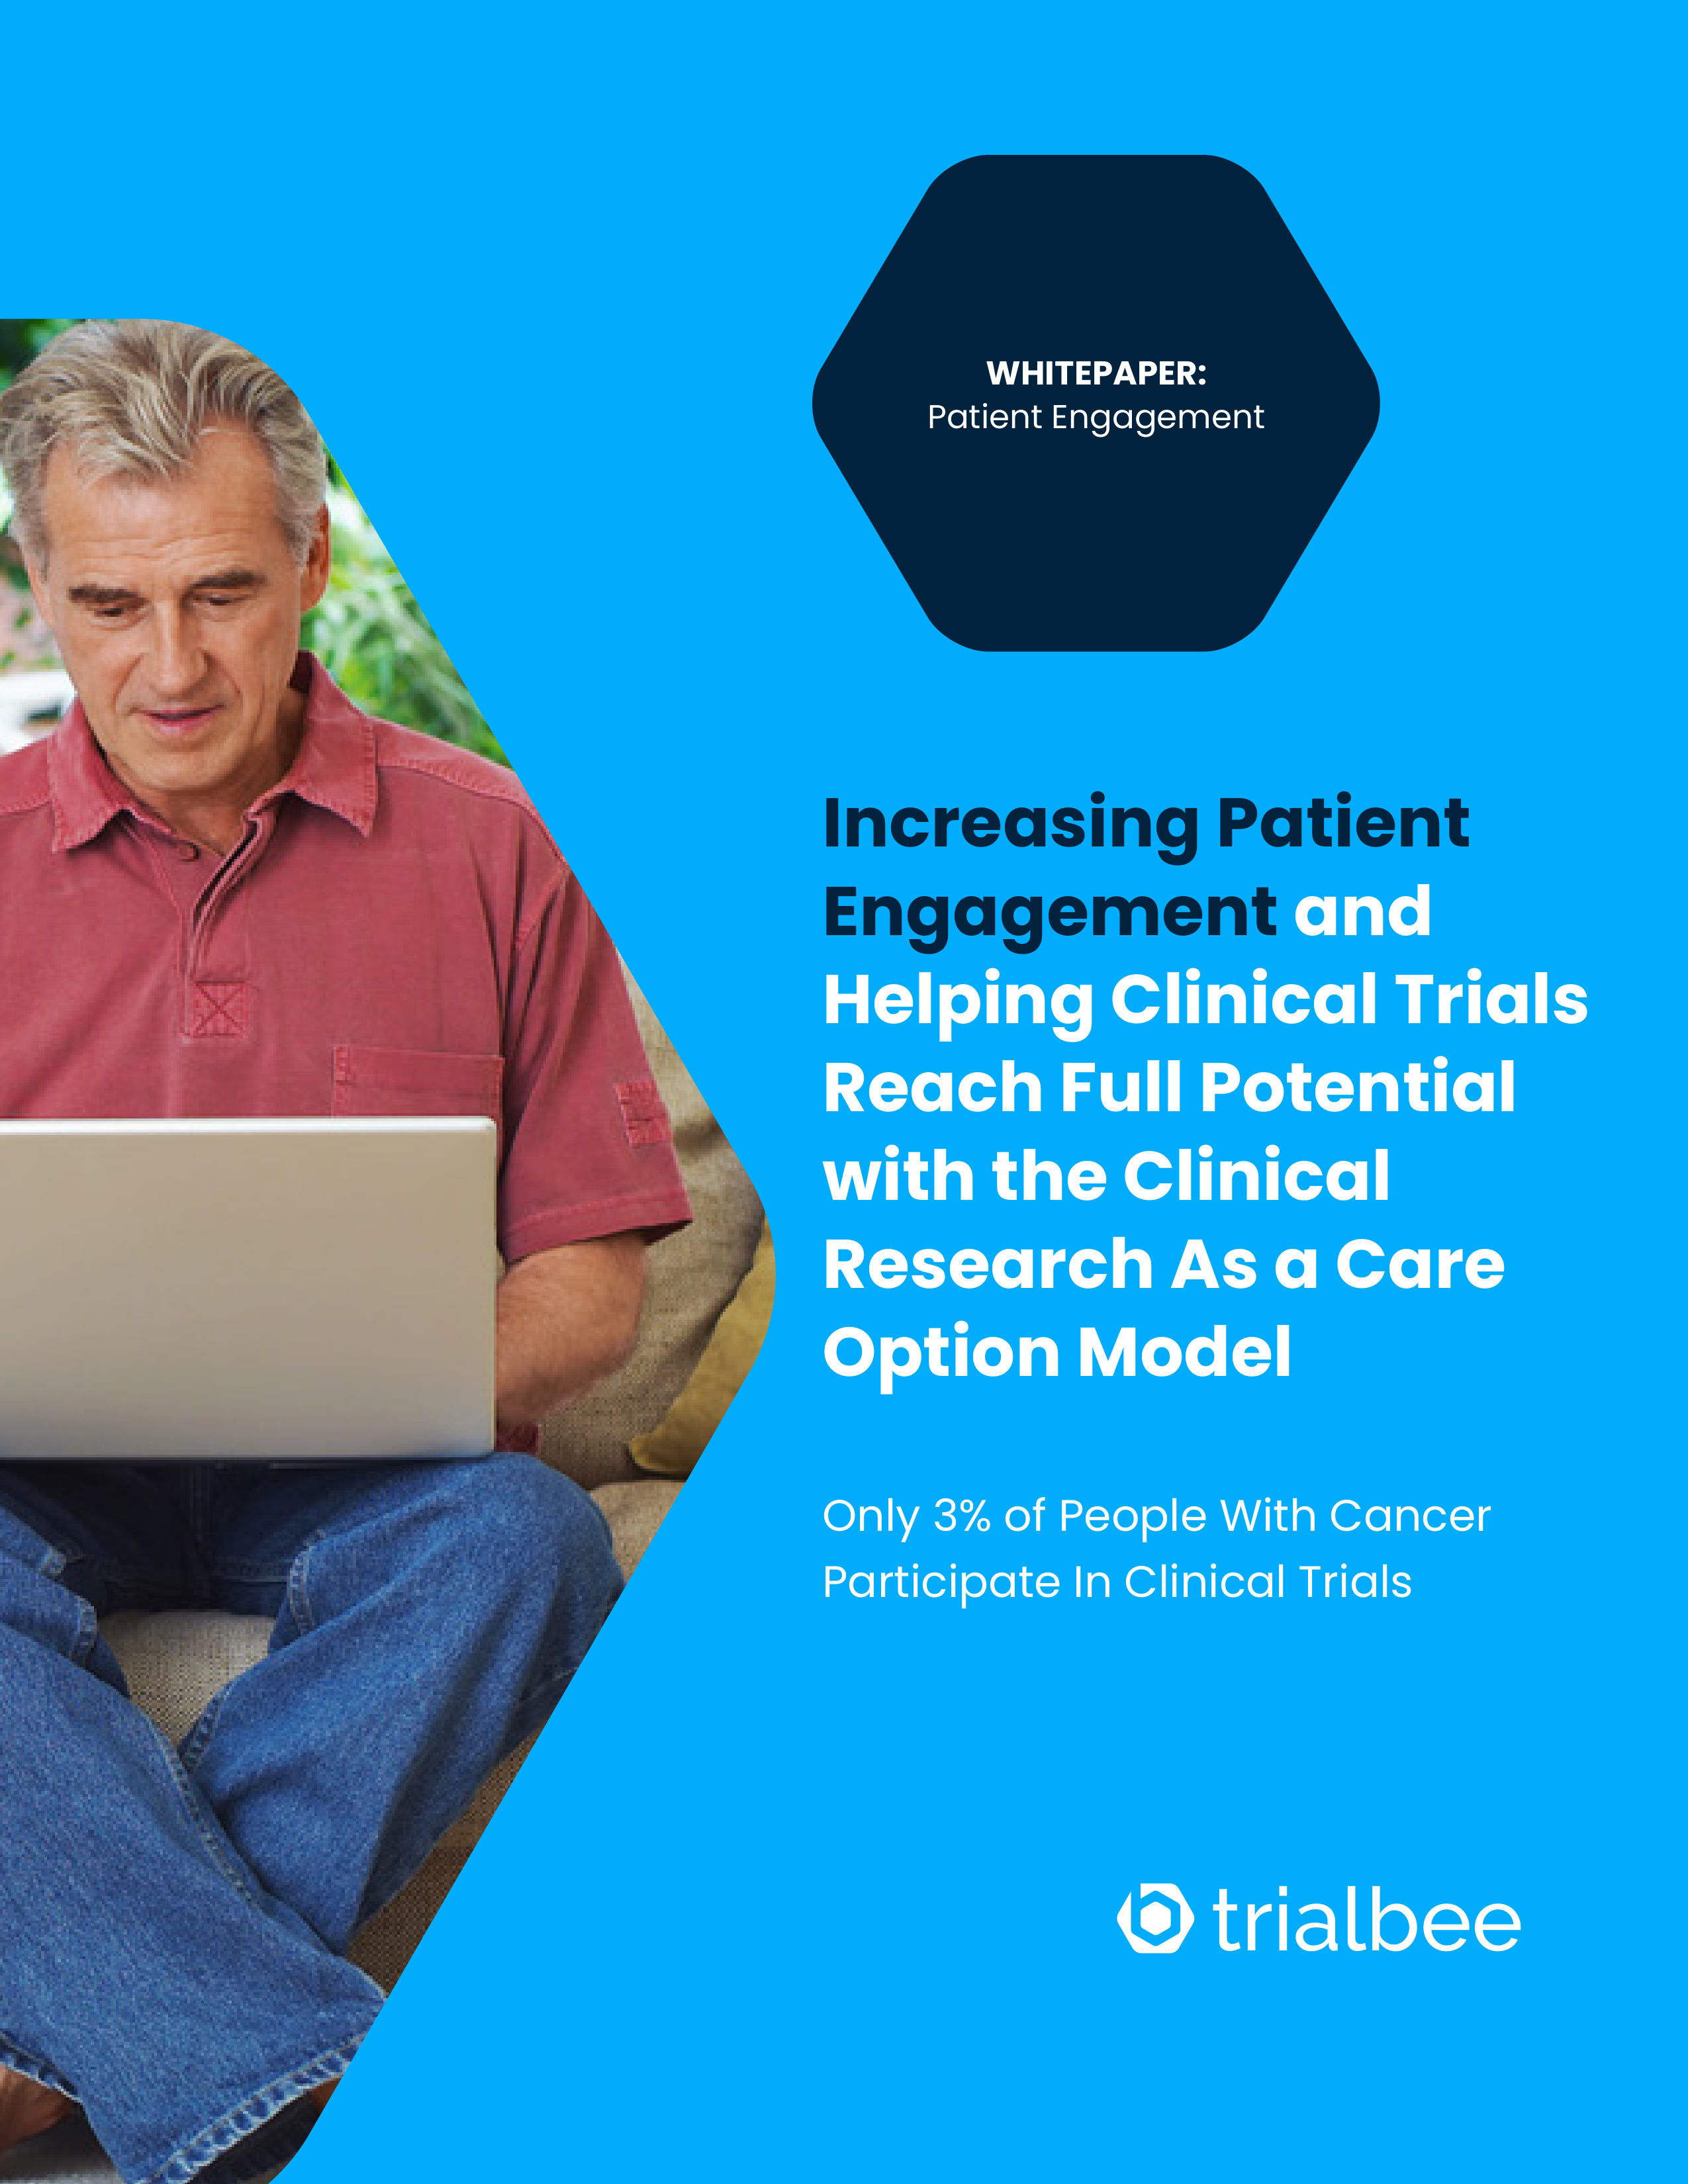 Increasing Patient Engagement and Helping Clinical Trials Reach Full Potential with the Clinical Research as a Care Option Model